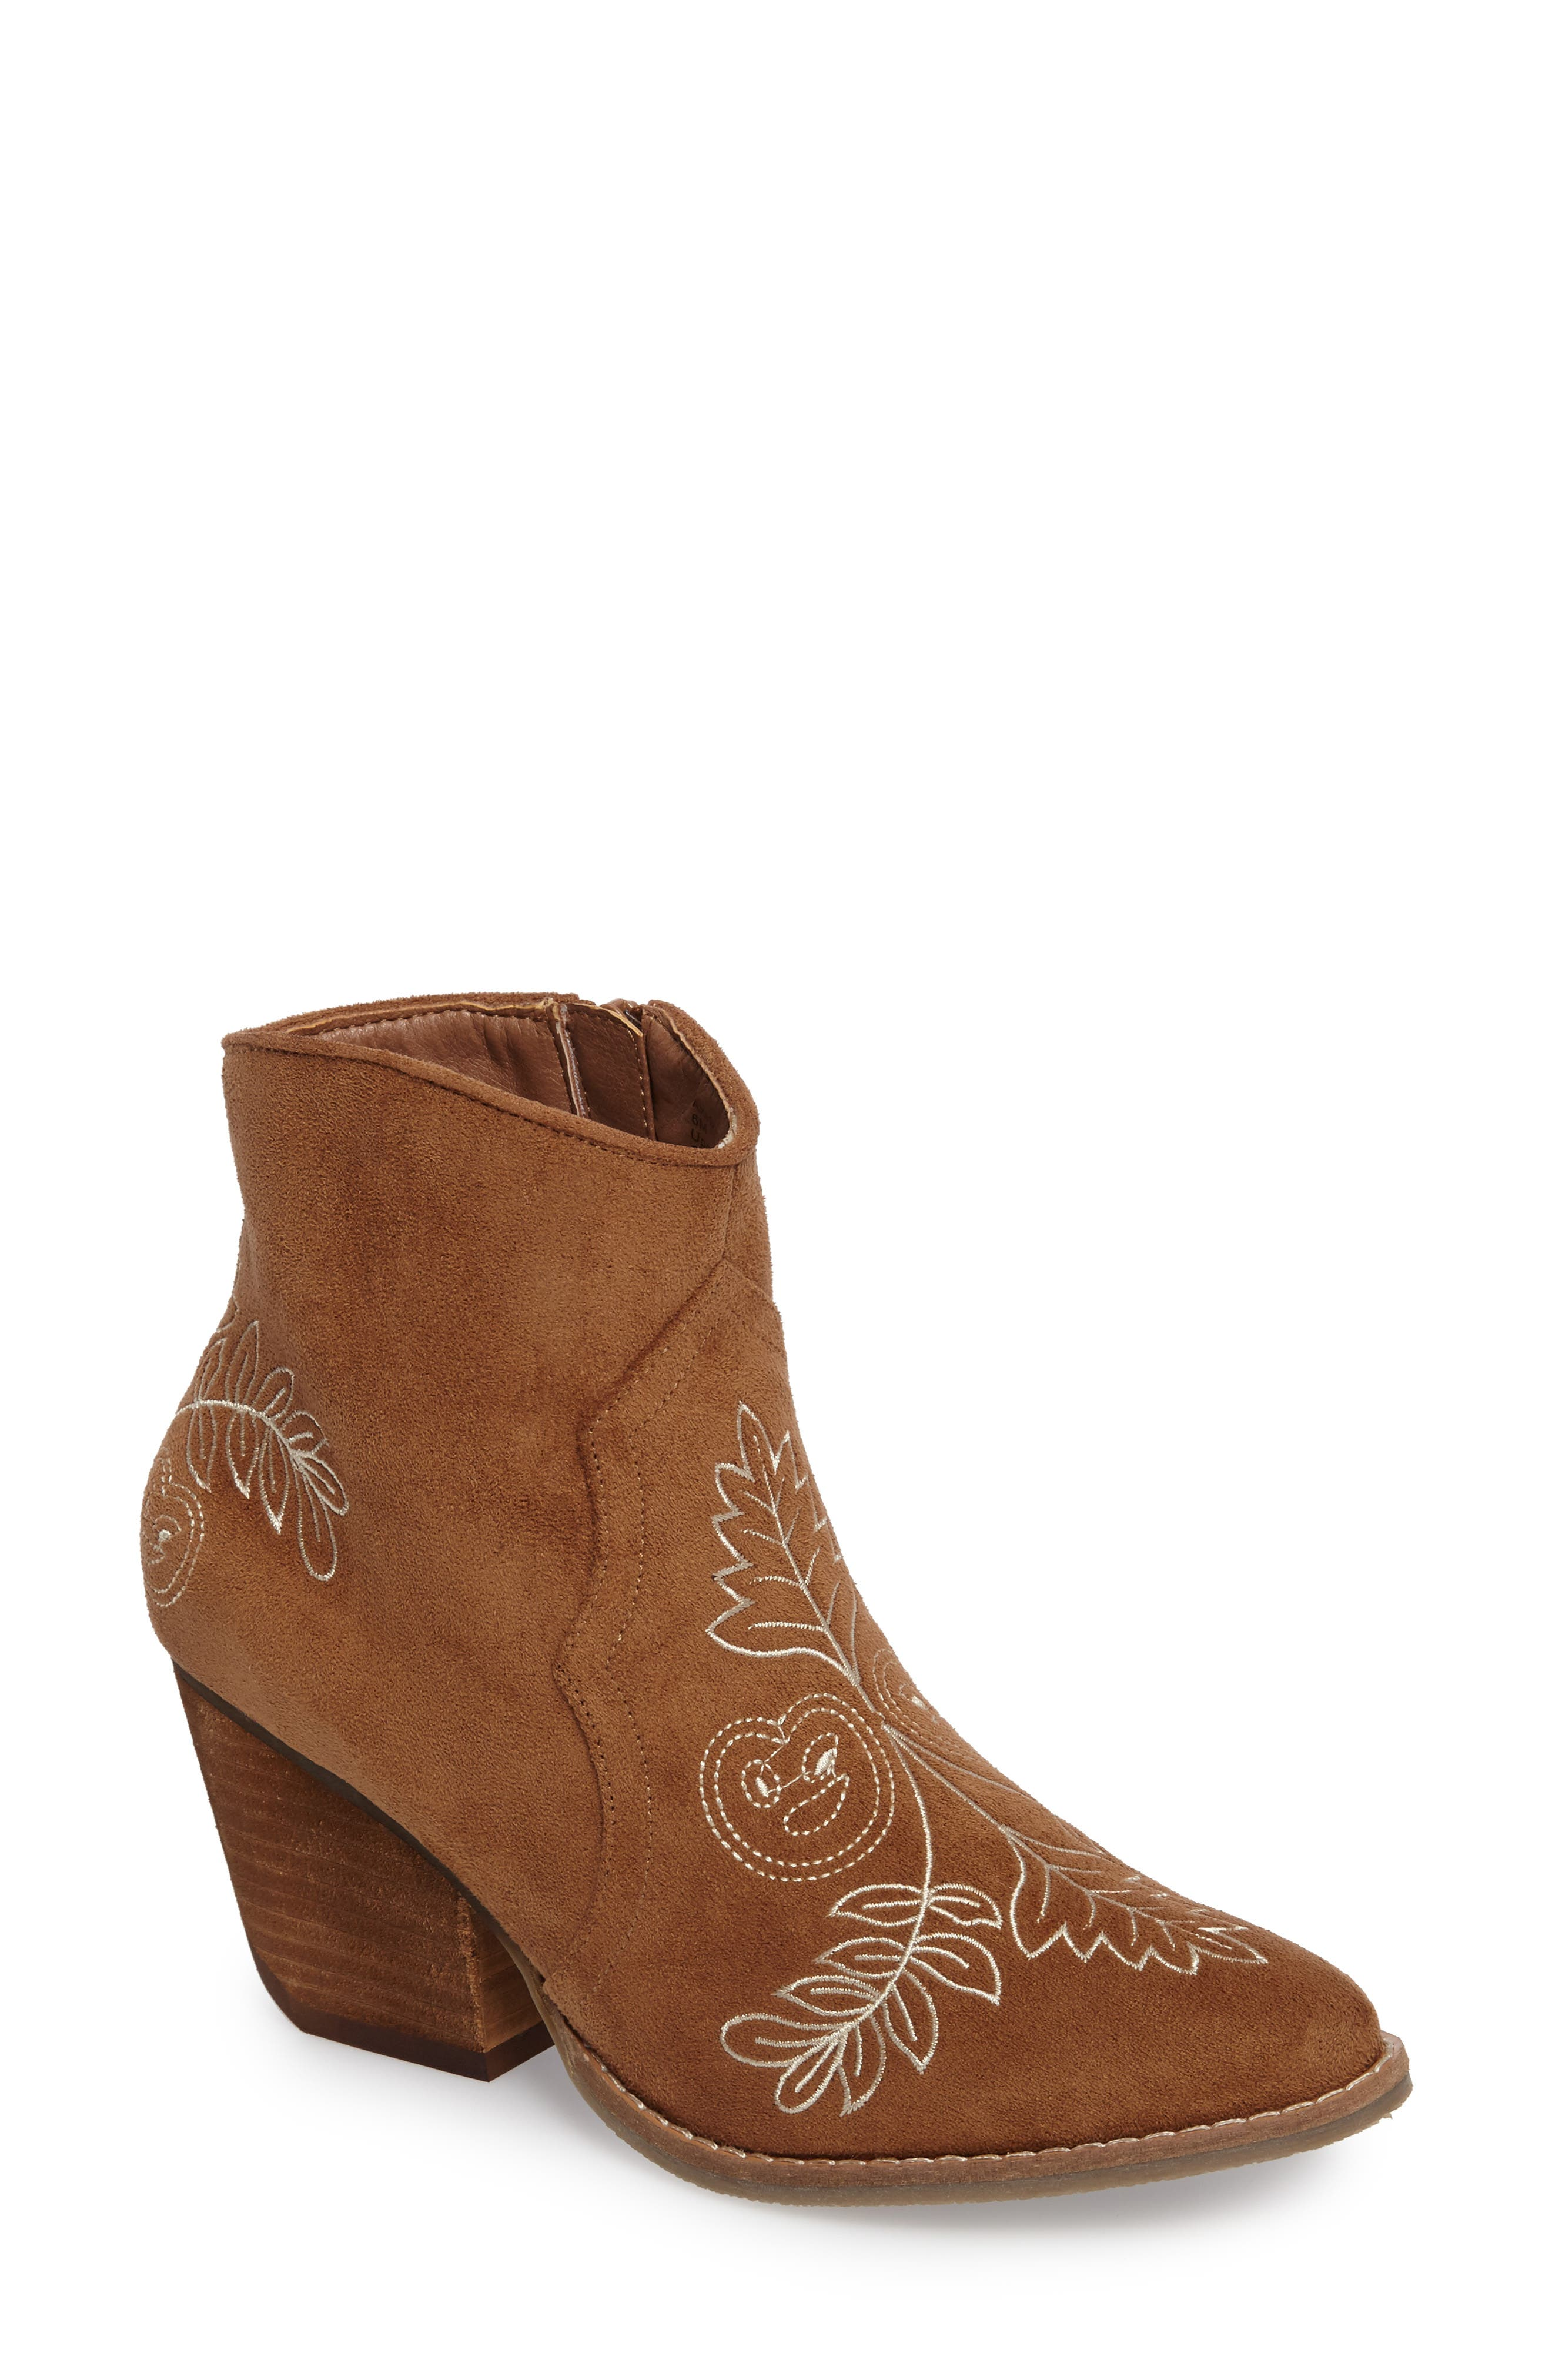 COCONUTS BY MATISSE Axis Embroidered Bootie